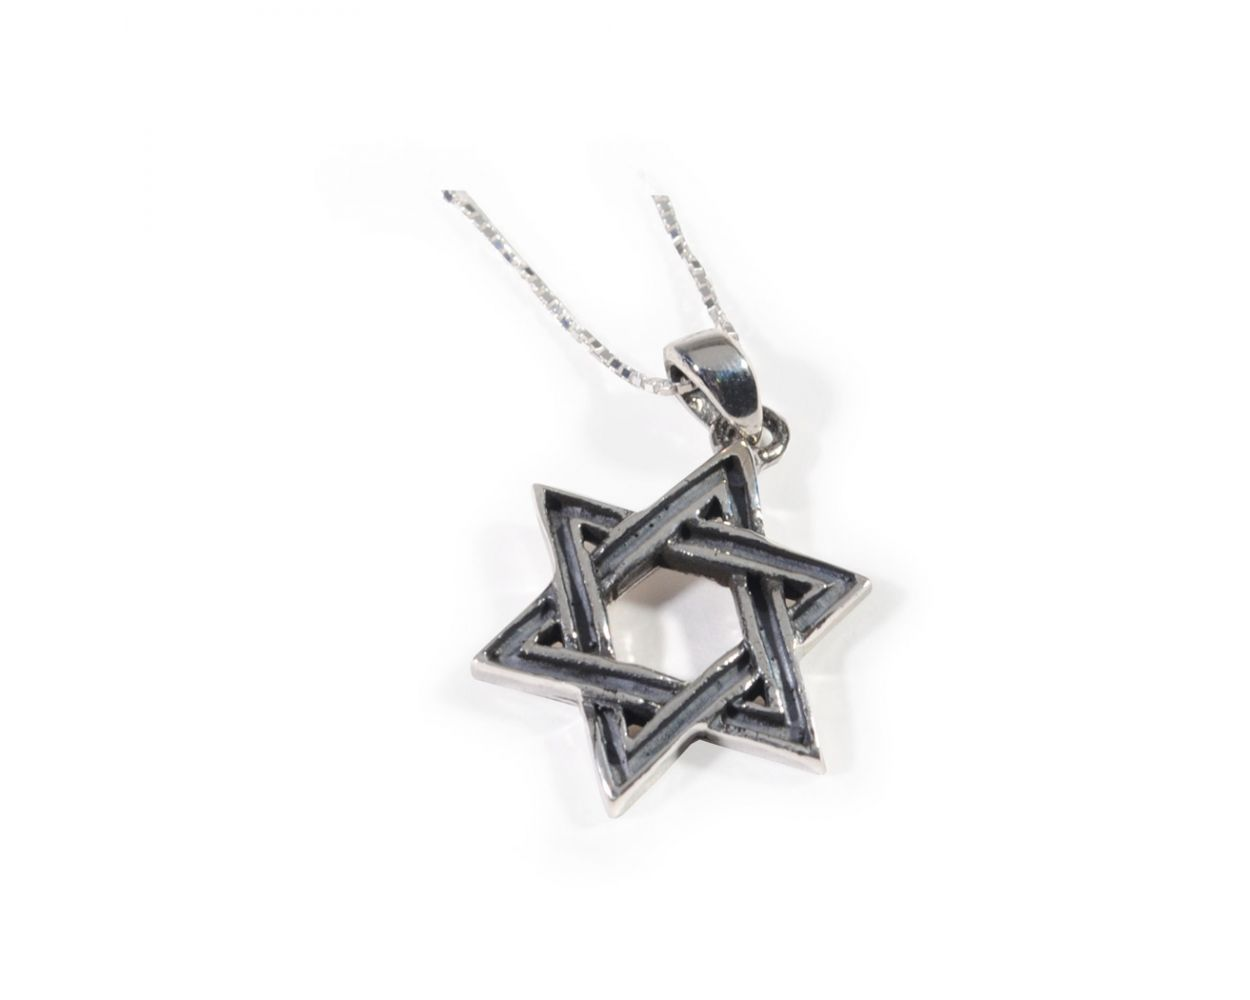 Jewels Obsession Silver Star Of David Necklace Rhodium-plated 925 Silver Star of David with Menorah Pendant with 18 Necklace